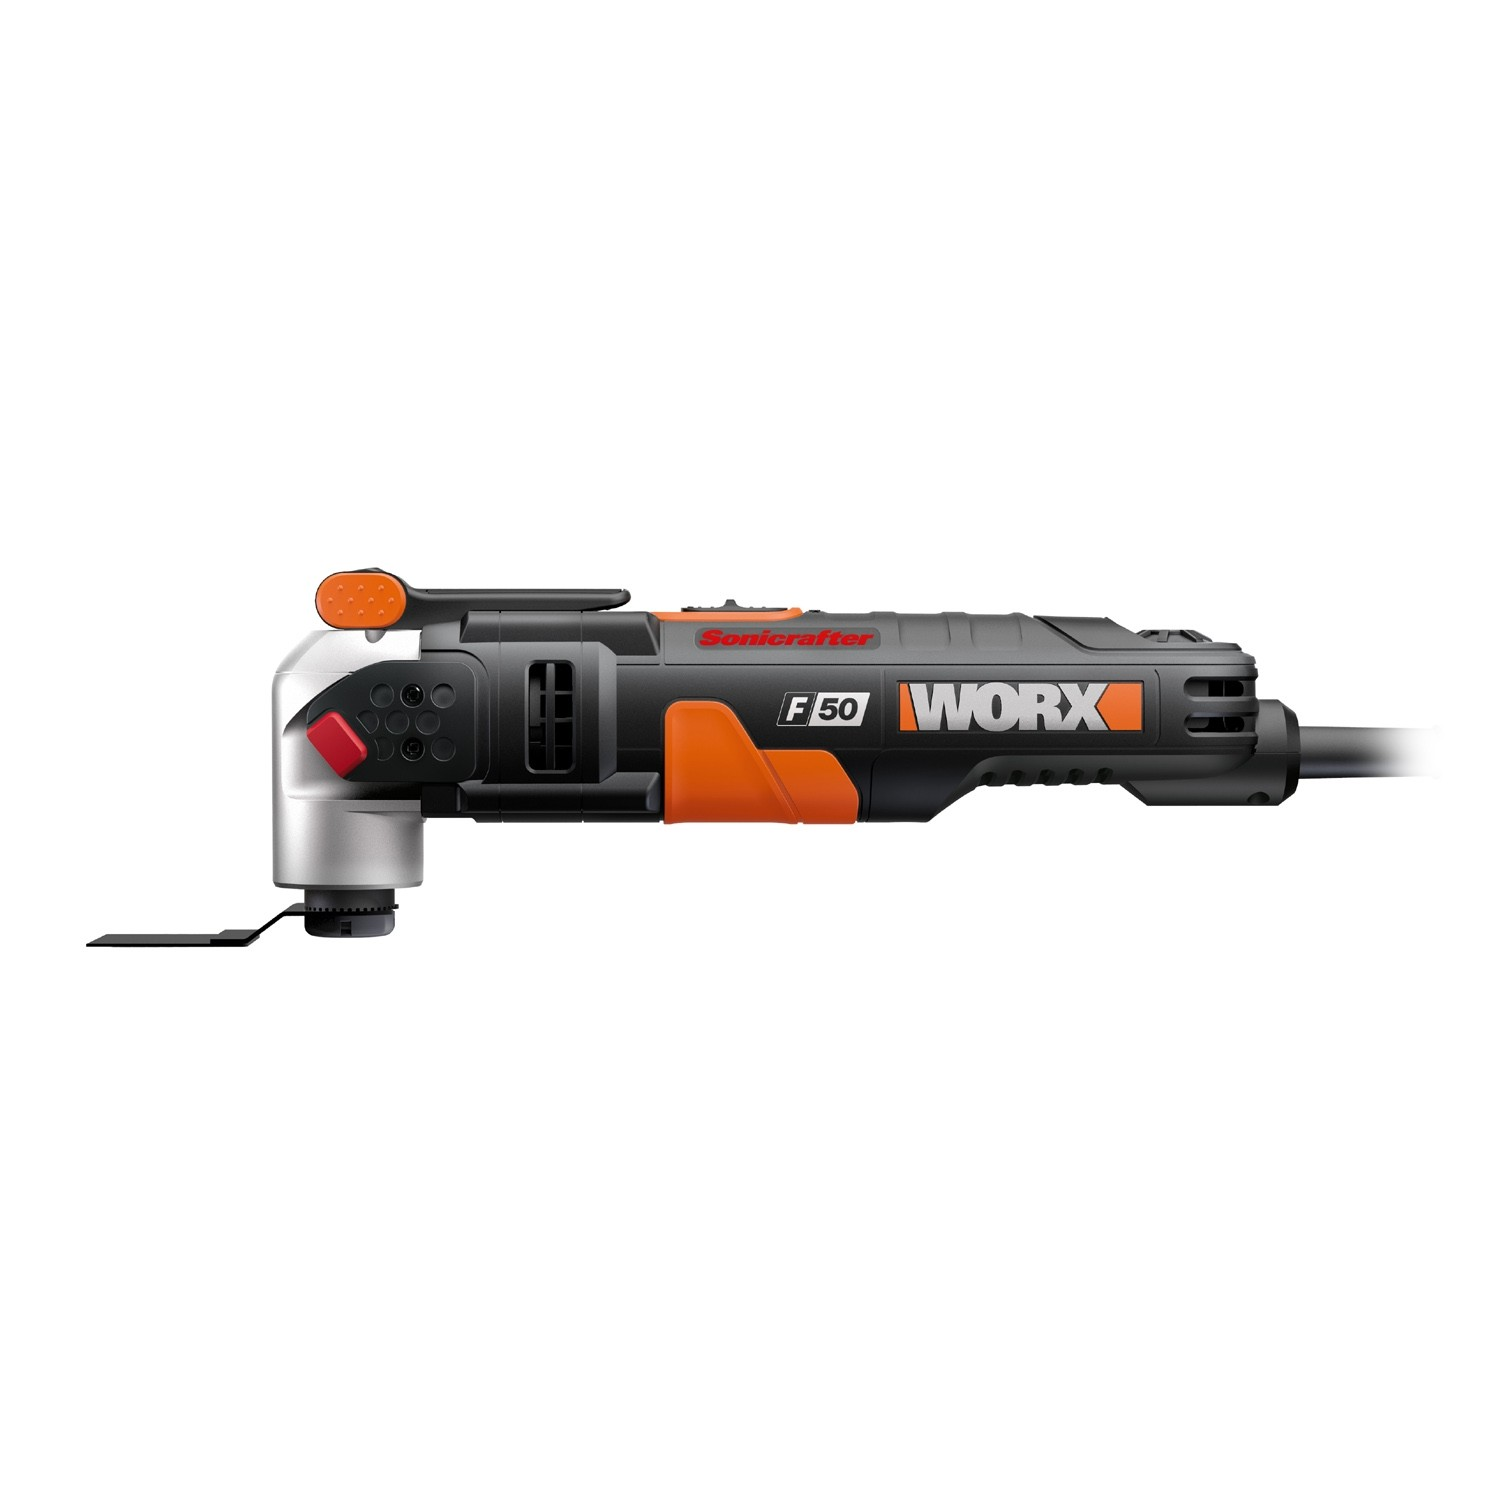 Worx multitool